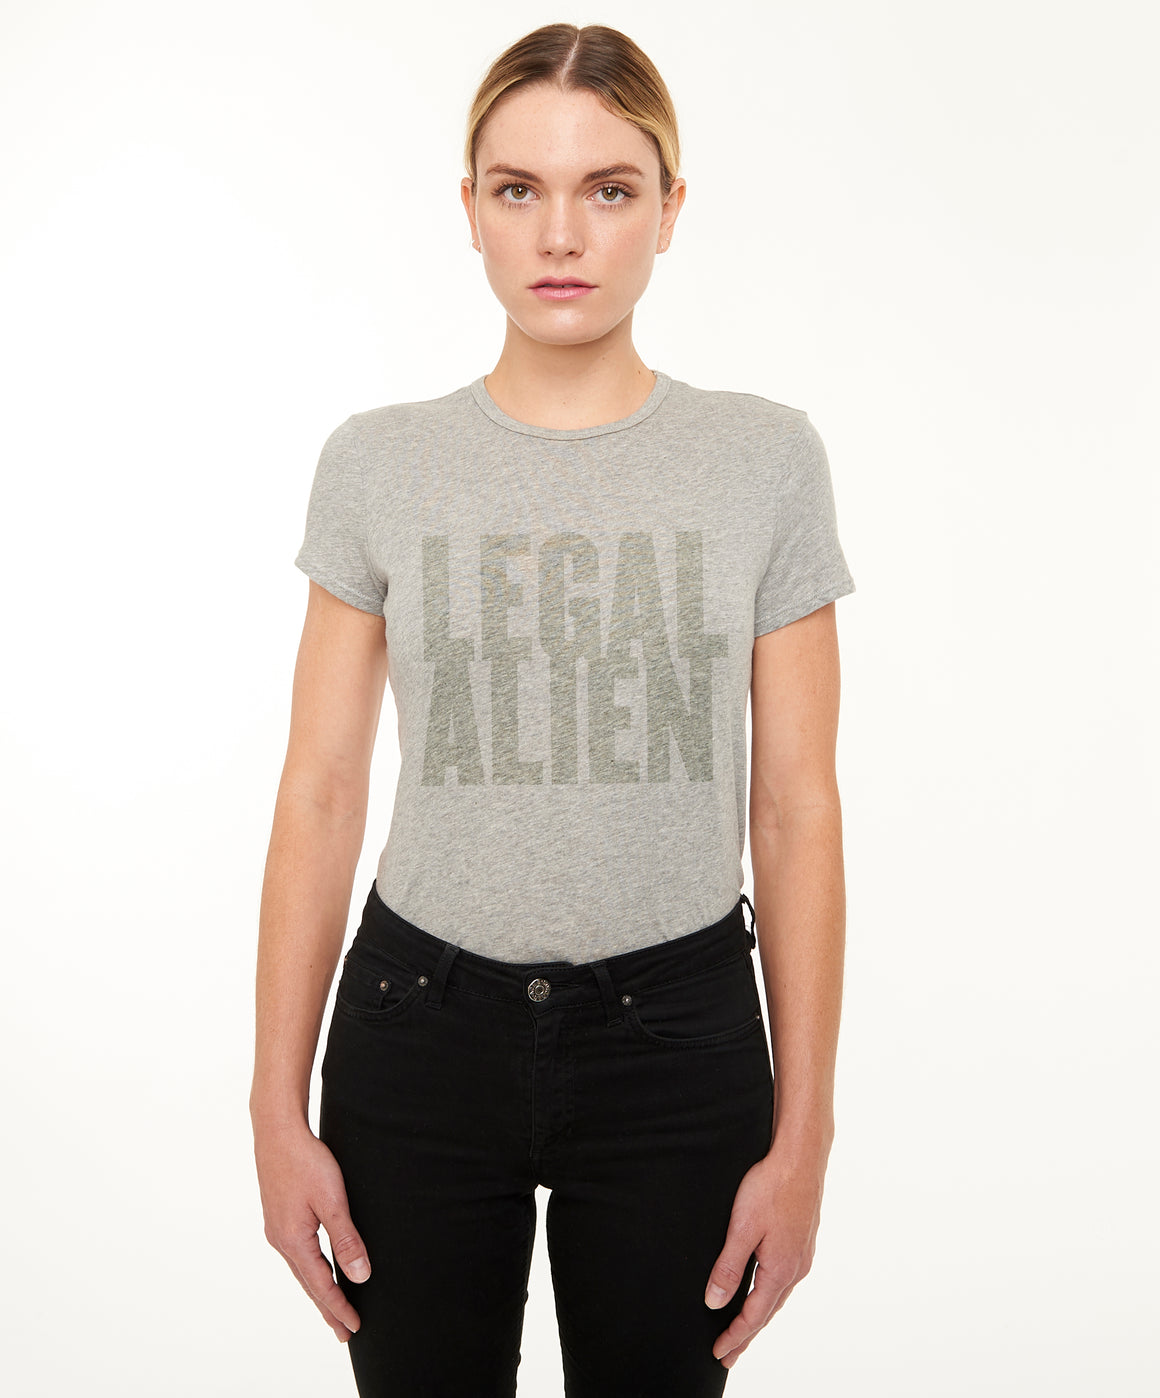 REPEL Clothing - Wear Your Voice!:Legal Alien Women's Fitted Tee - REPEL Clothing, XS / Yellow